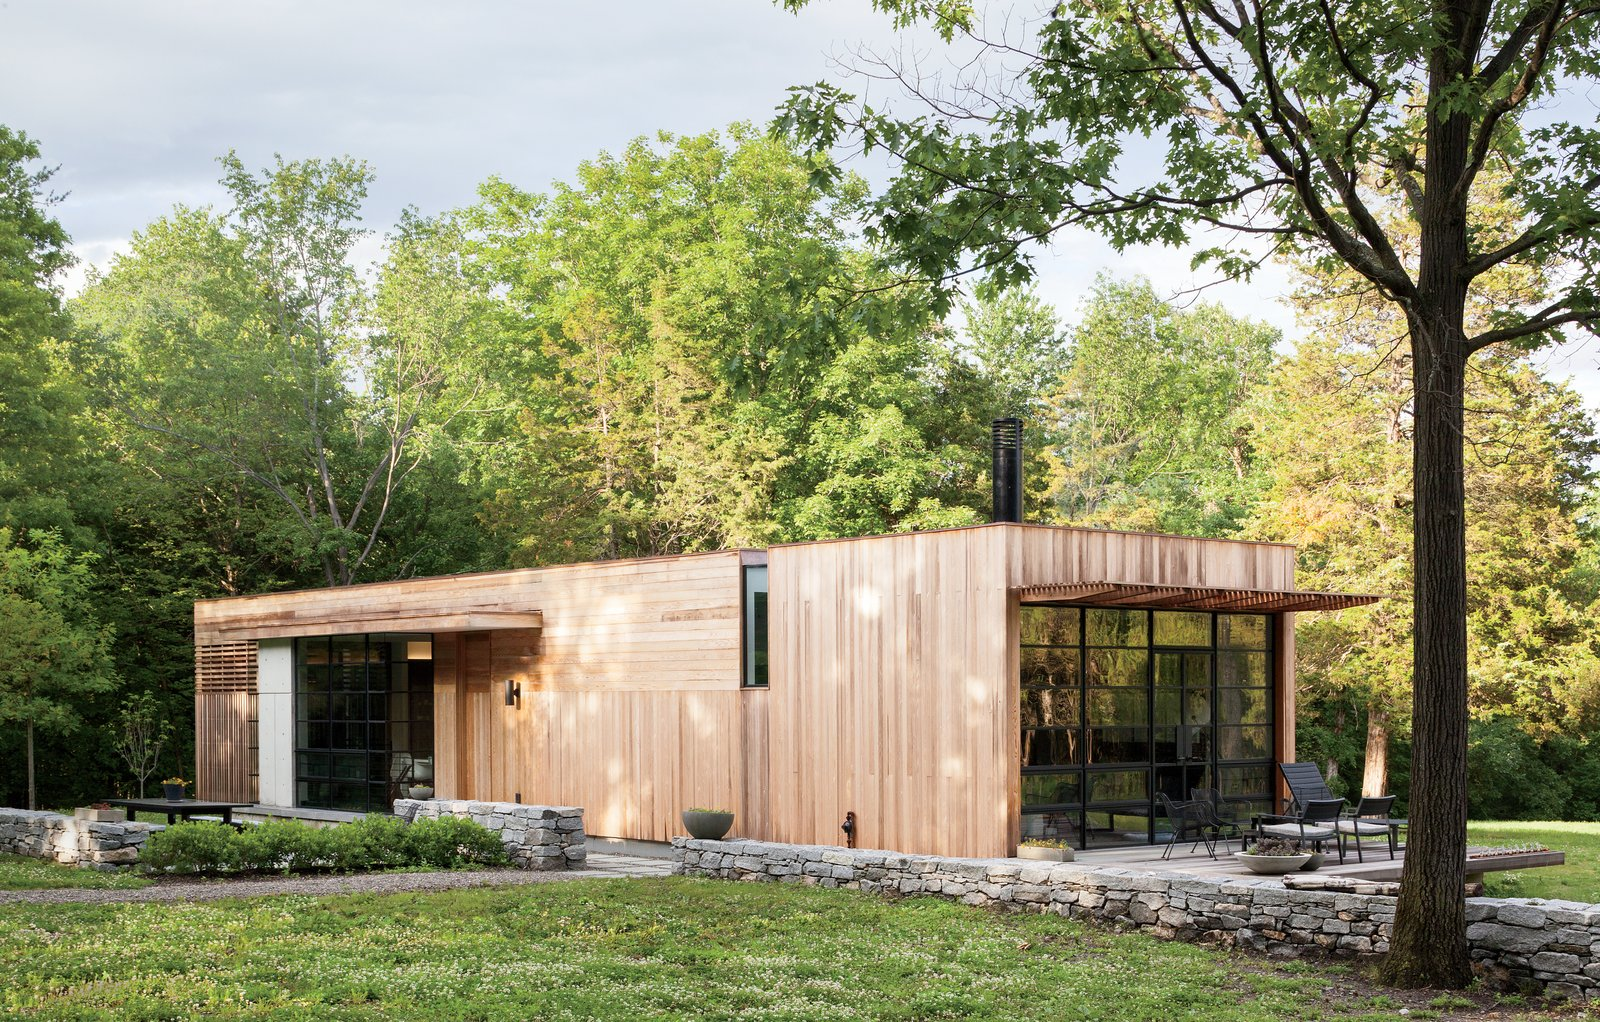 In realizing their dream to build a country retreat in upstate New York, Sandy Chilewich and Joe Sultan—proprietors of the textiles firm Chilewich|Sultan—eschewed a mountainous view for an understated wooded plot. At 800 square feet, the flat-roofed home is a modest structure for the expansive 10-acre property. Superb Single-Story Homes by Luke Hopping